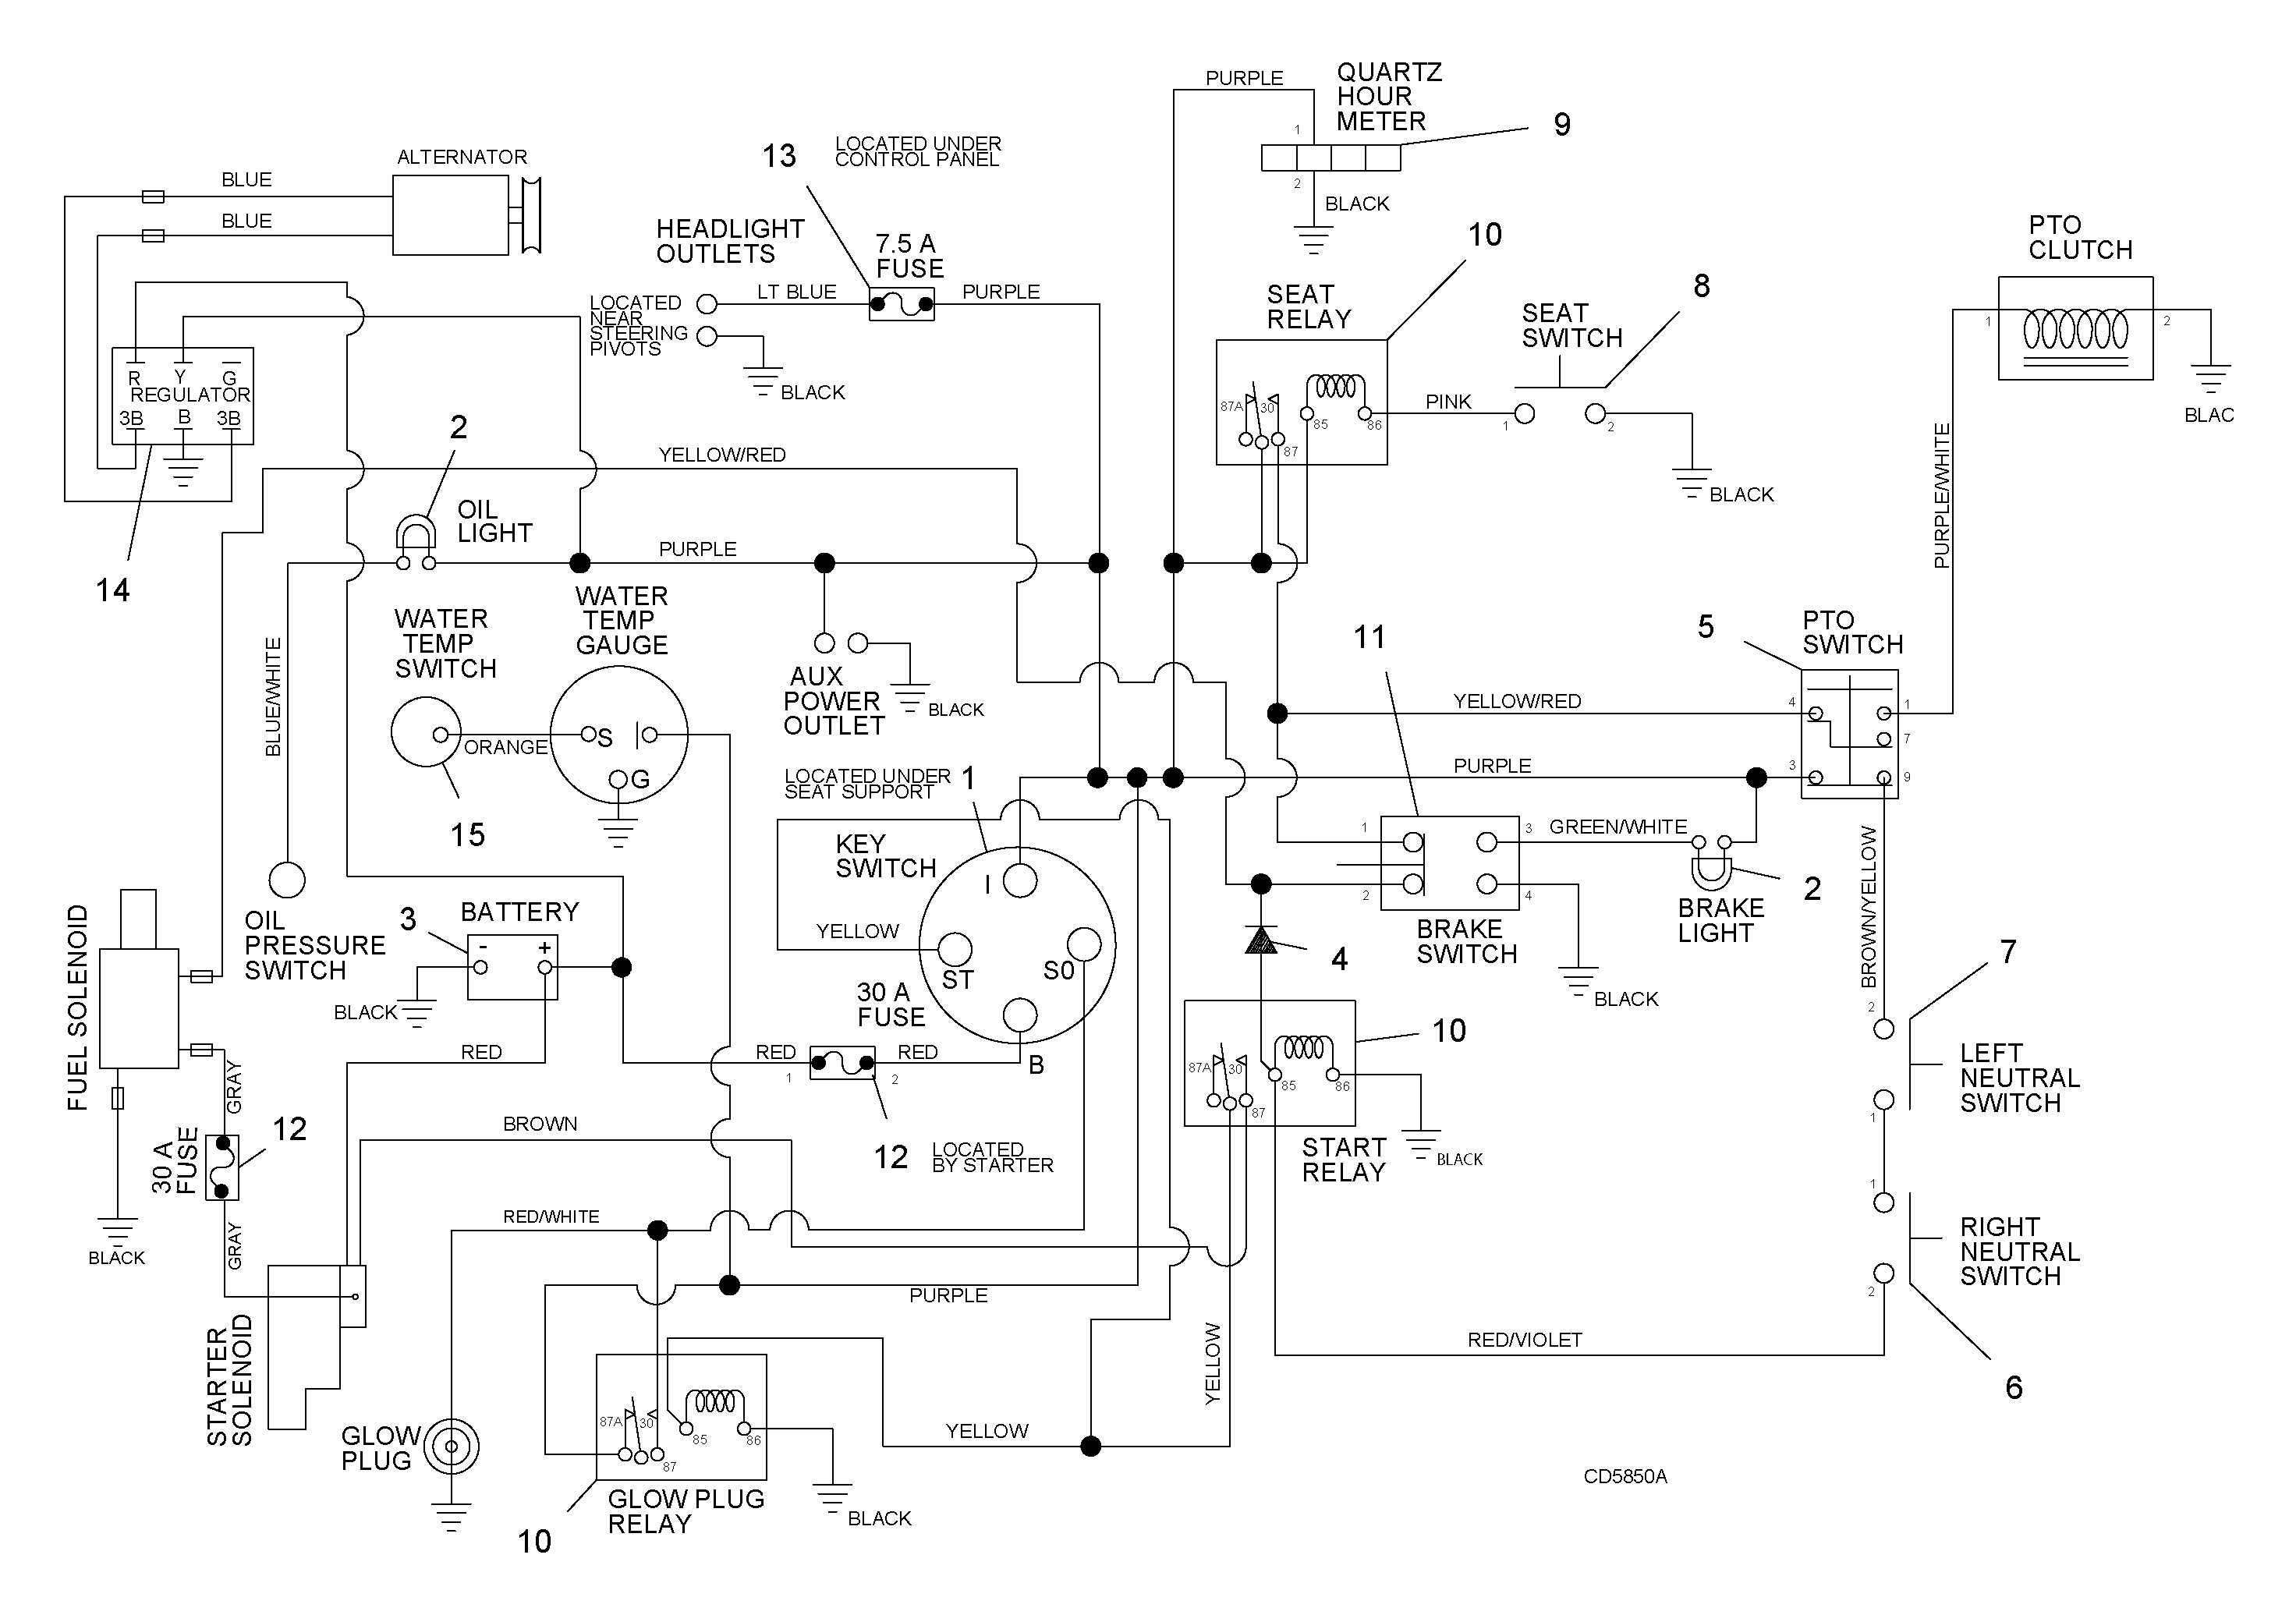 kubota tractor wiring diagrams pdf kubota tractor wiring diagrams free download diagram